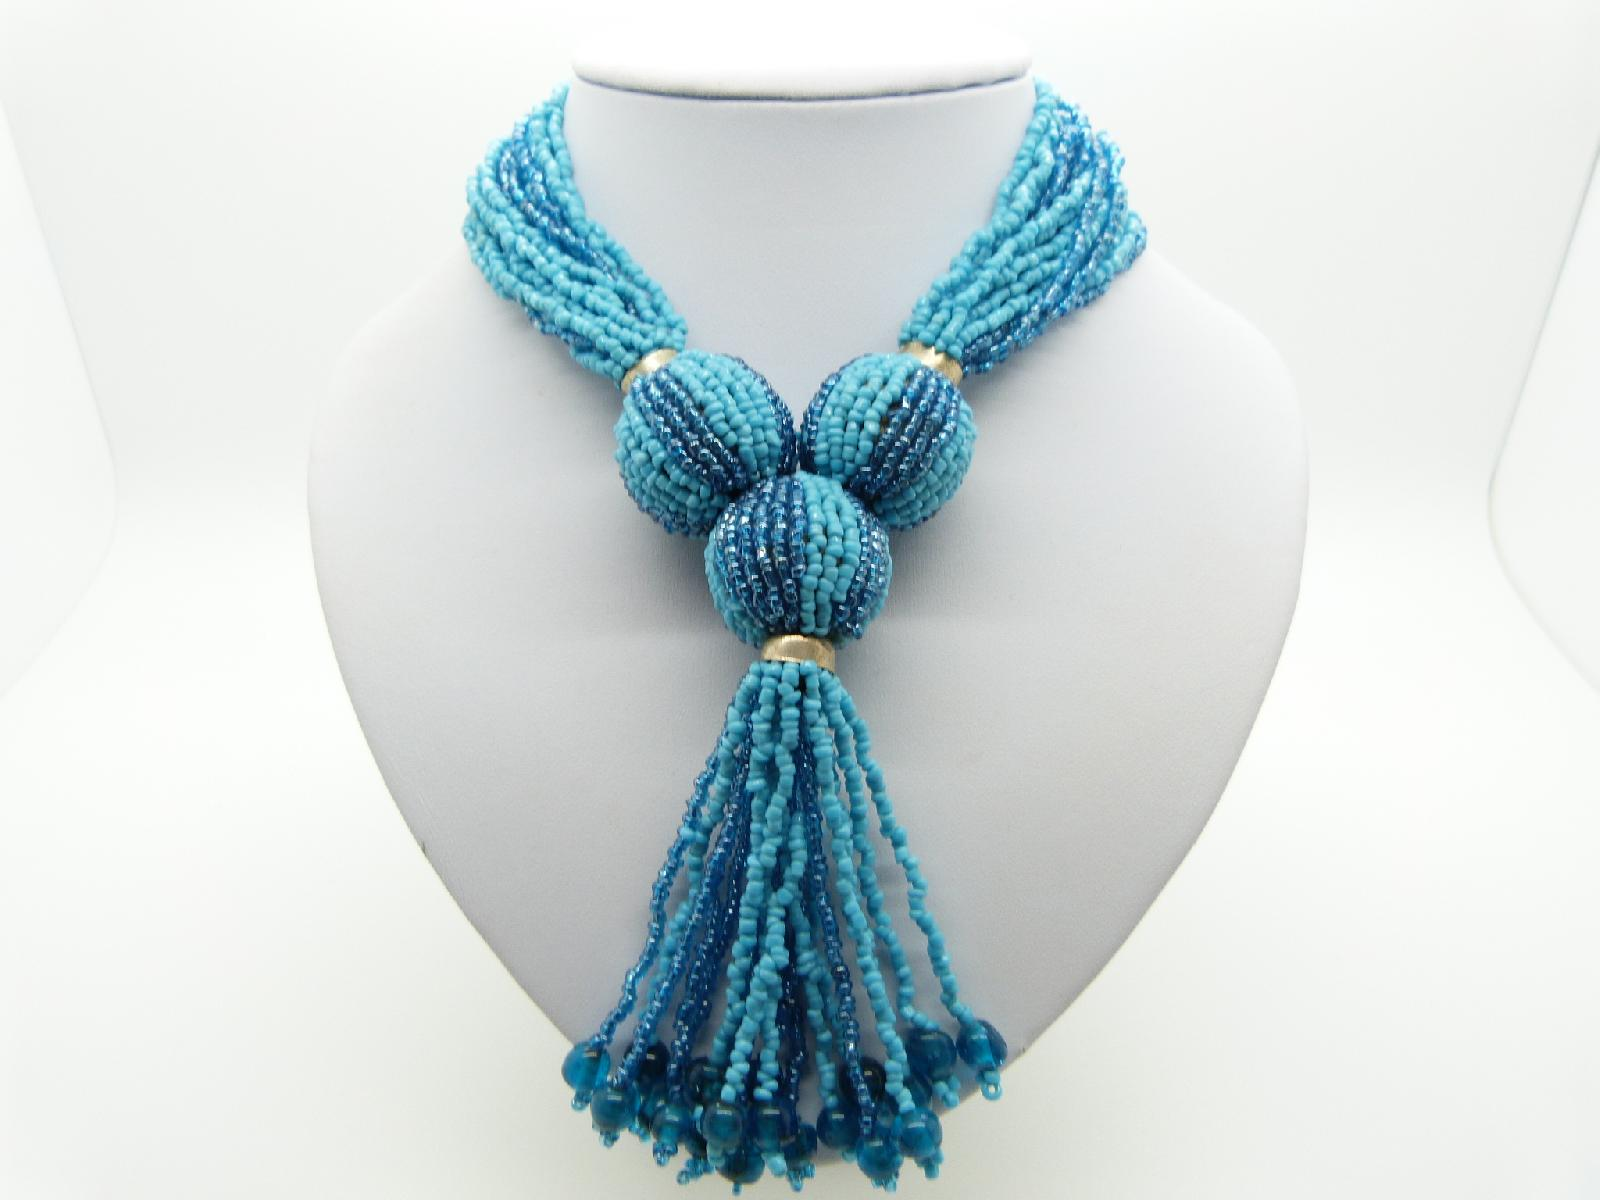 Stunning Turquoise Glass Seed Bead Multi Strand Tassel Statement Necklace